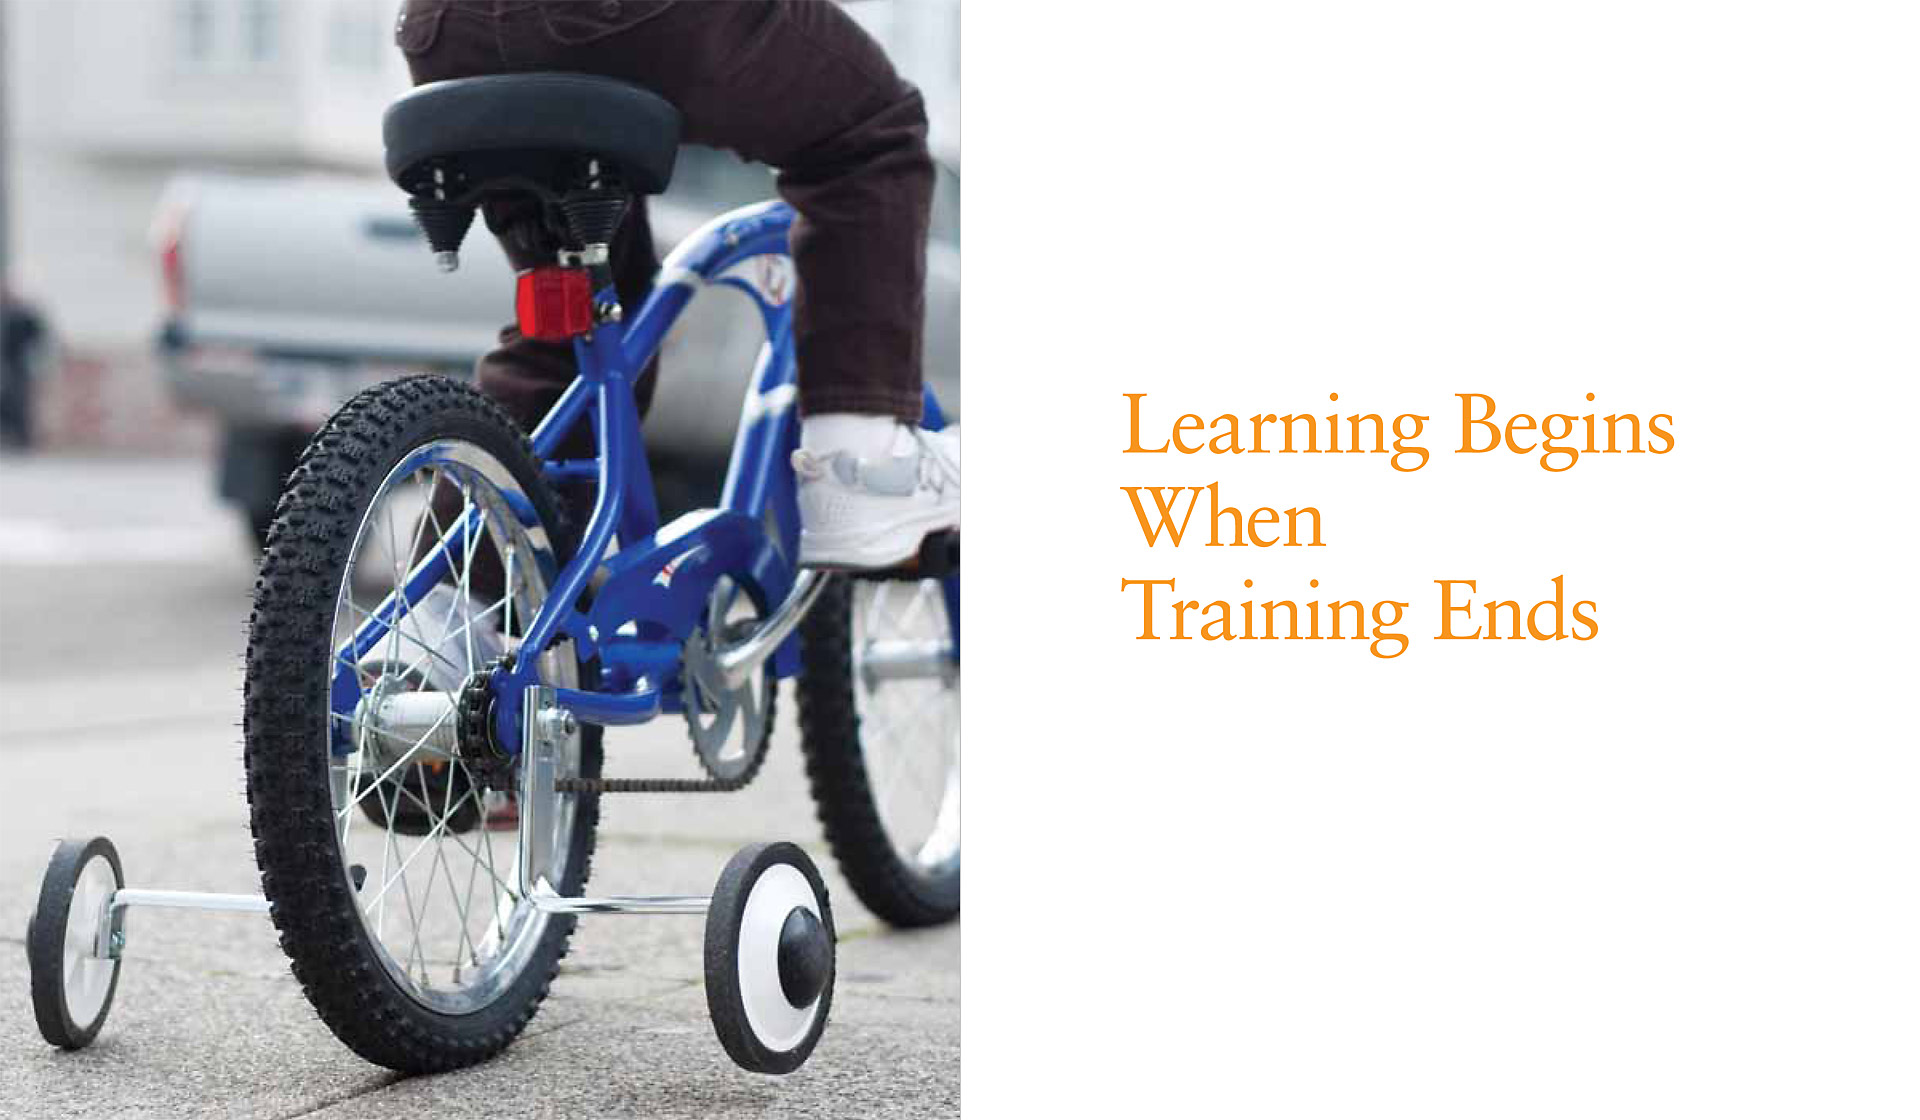 EmersonBook-trainingwheels.jpg